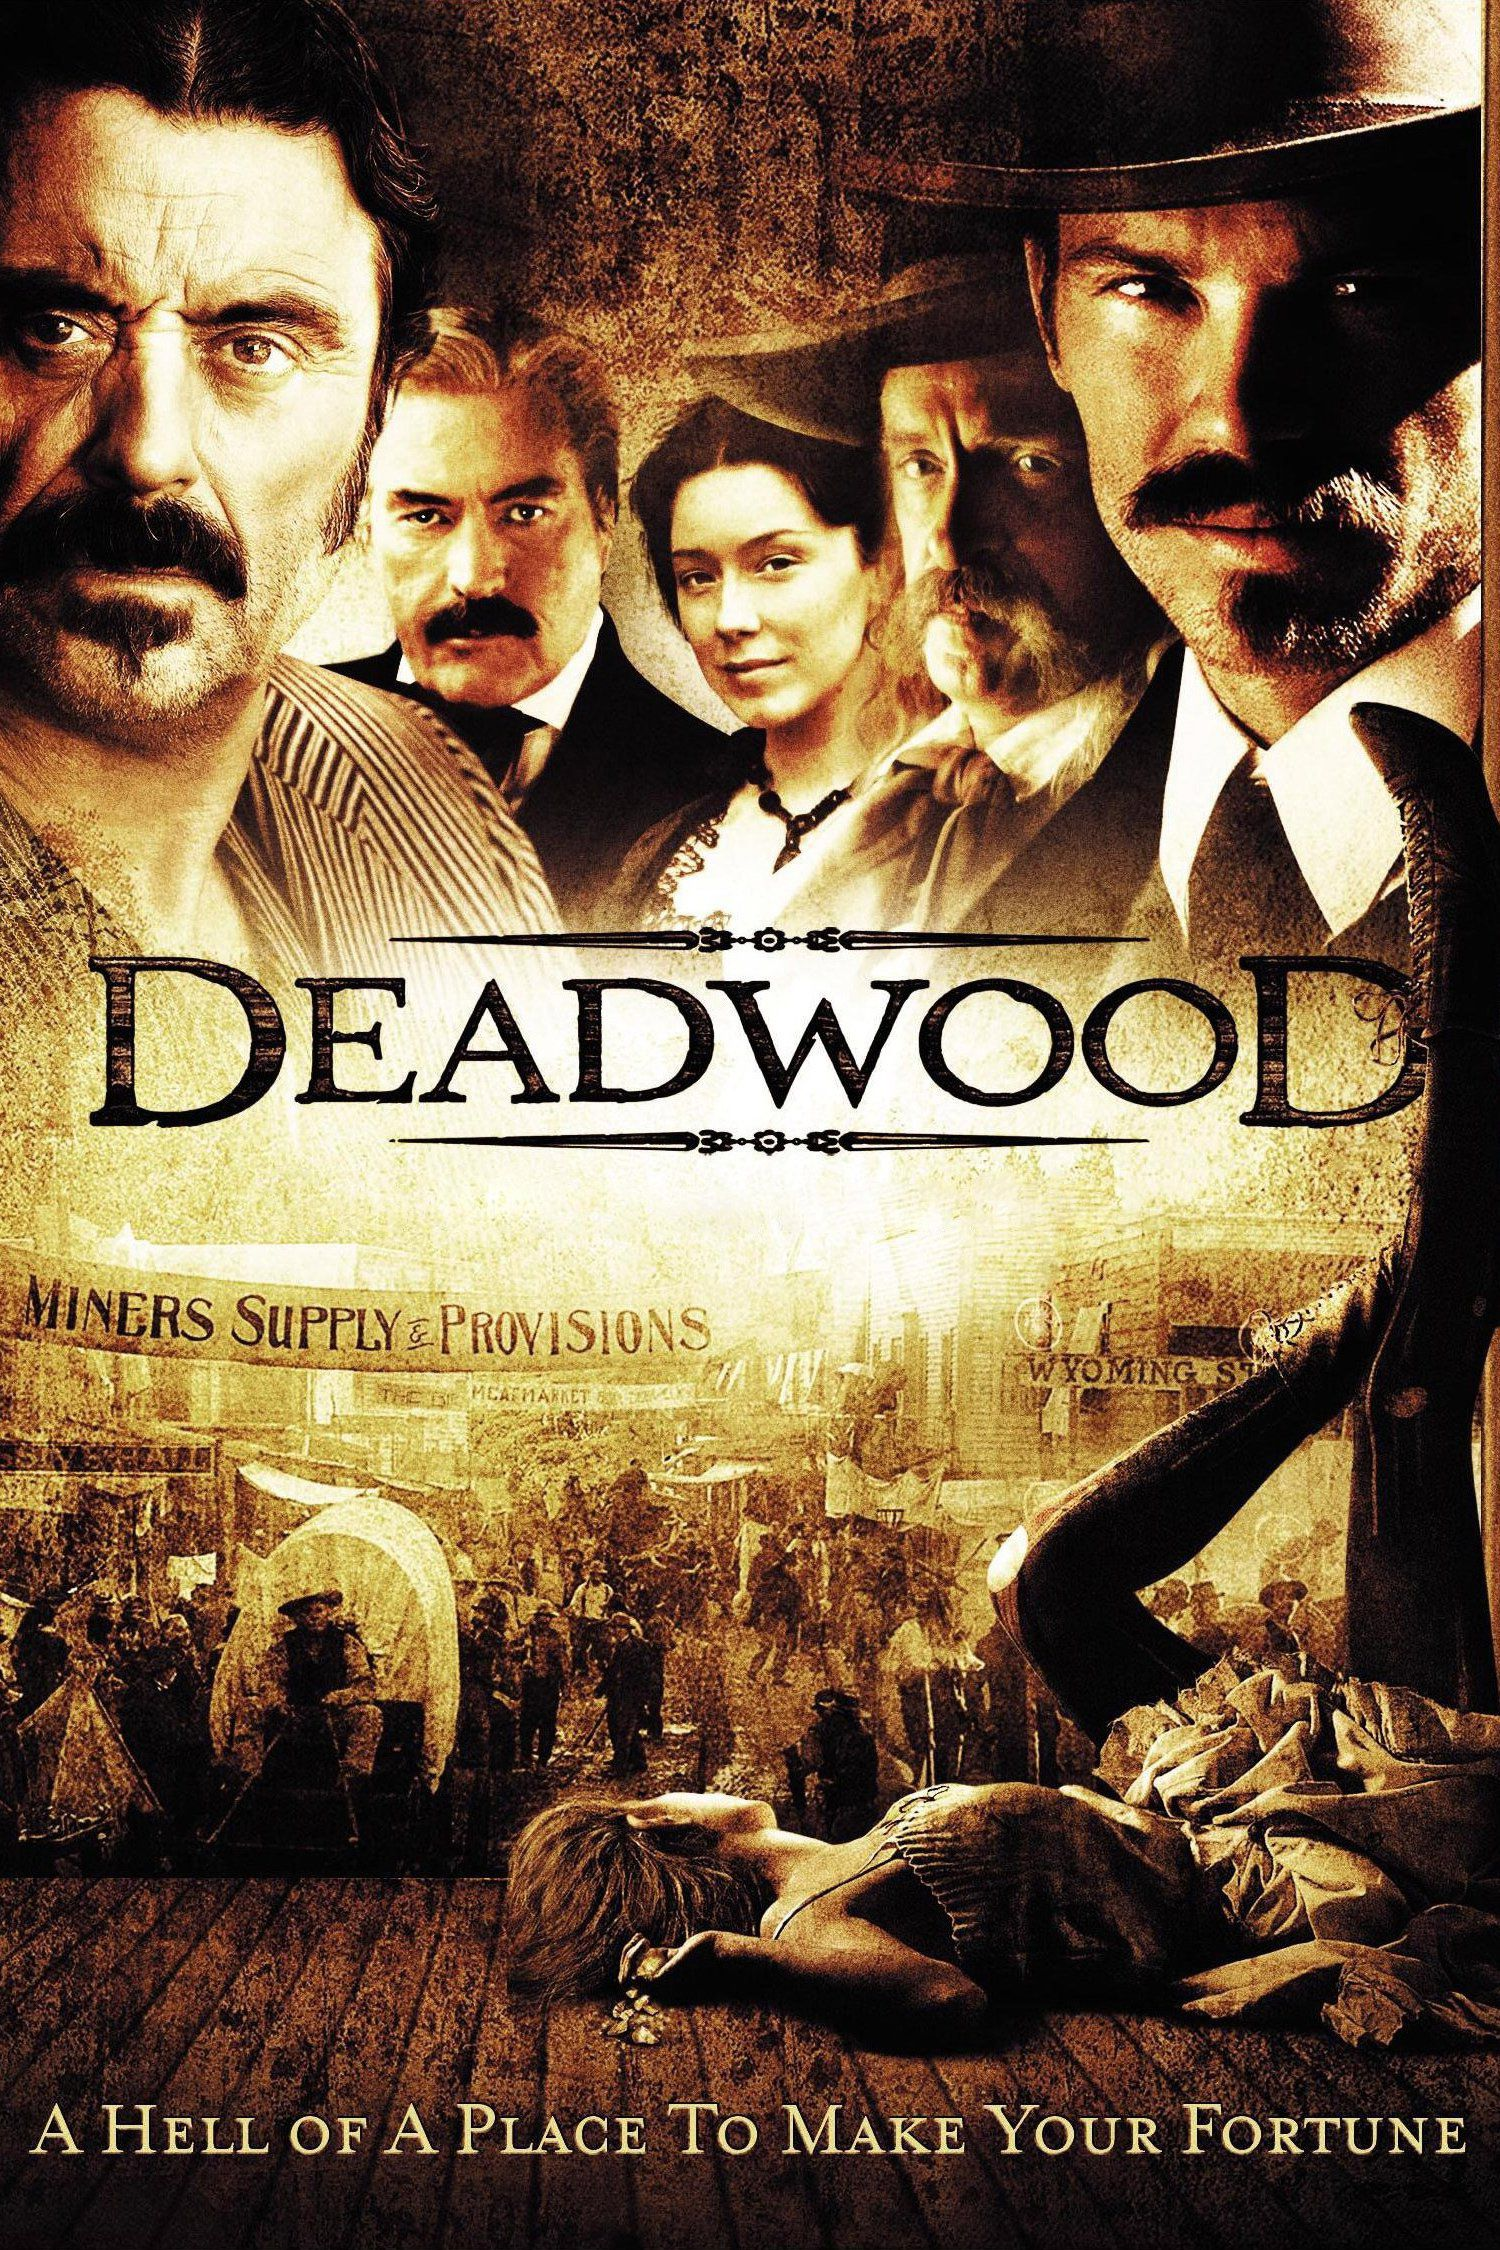 Voir Film Deadwood - Série (2004) streaming VF gratuit complet